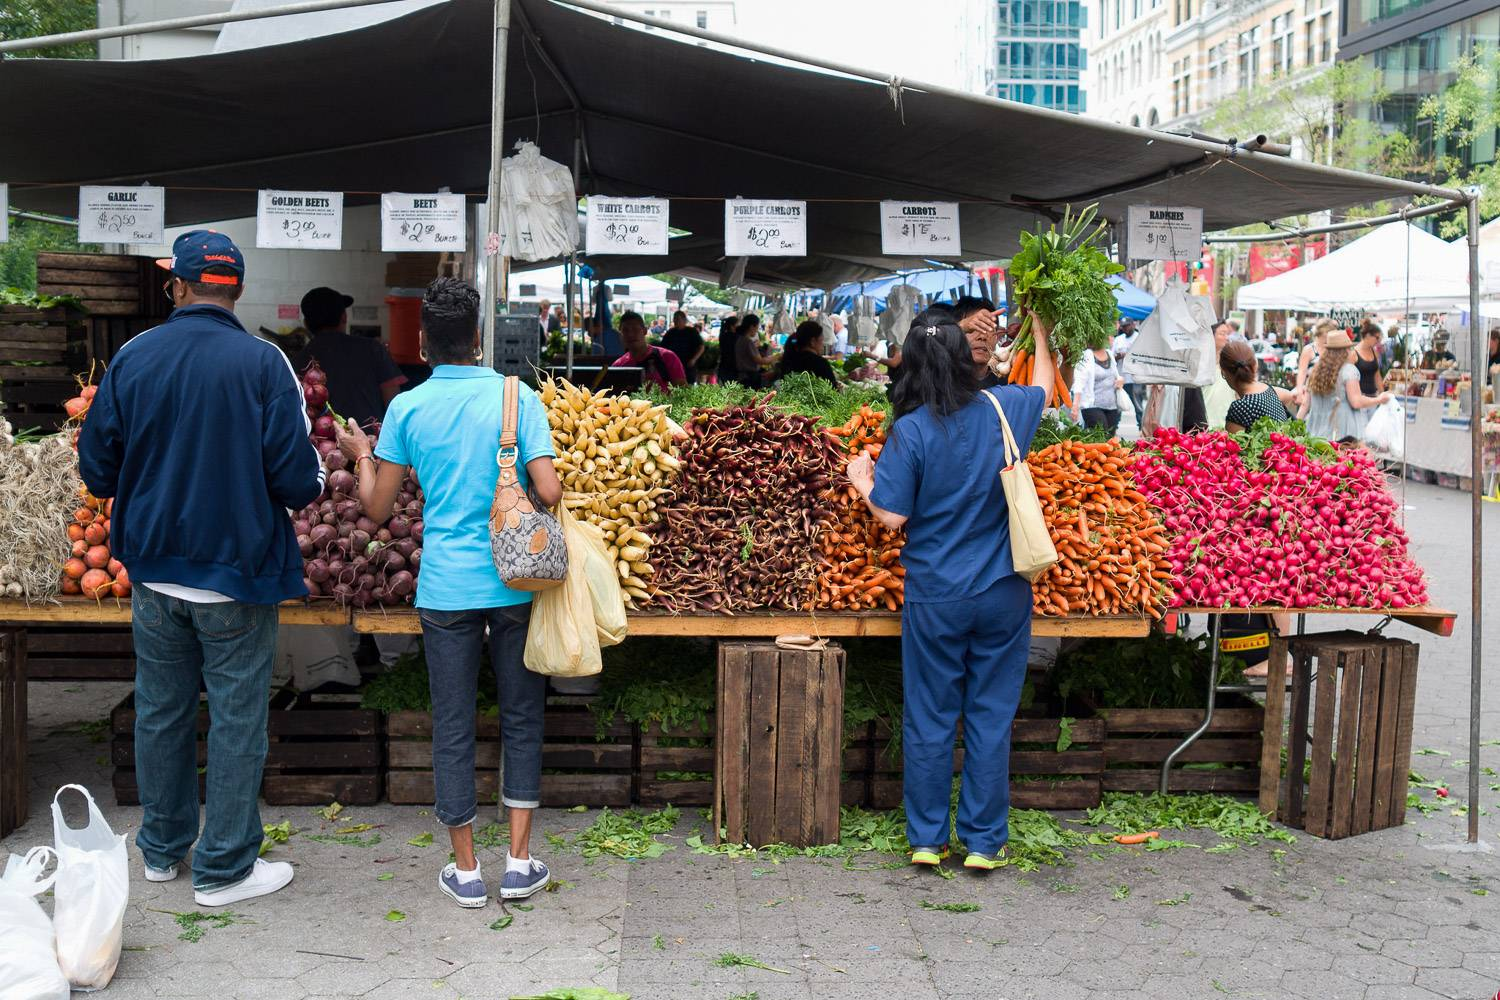 Image of the Union Square Greenmarket with customers choosing from the array of fruits and vegetables.